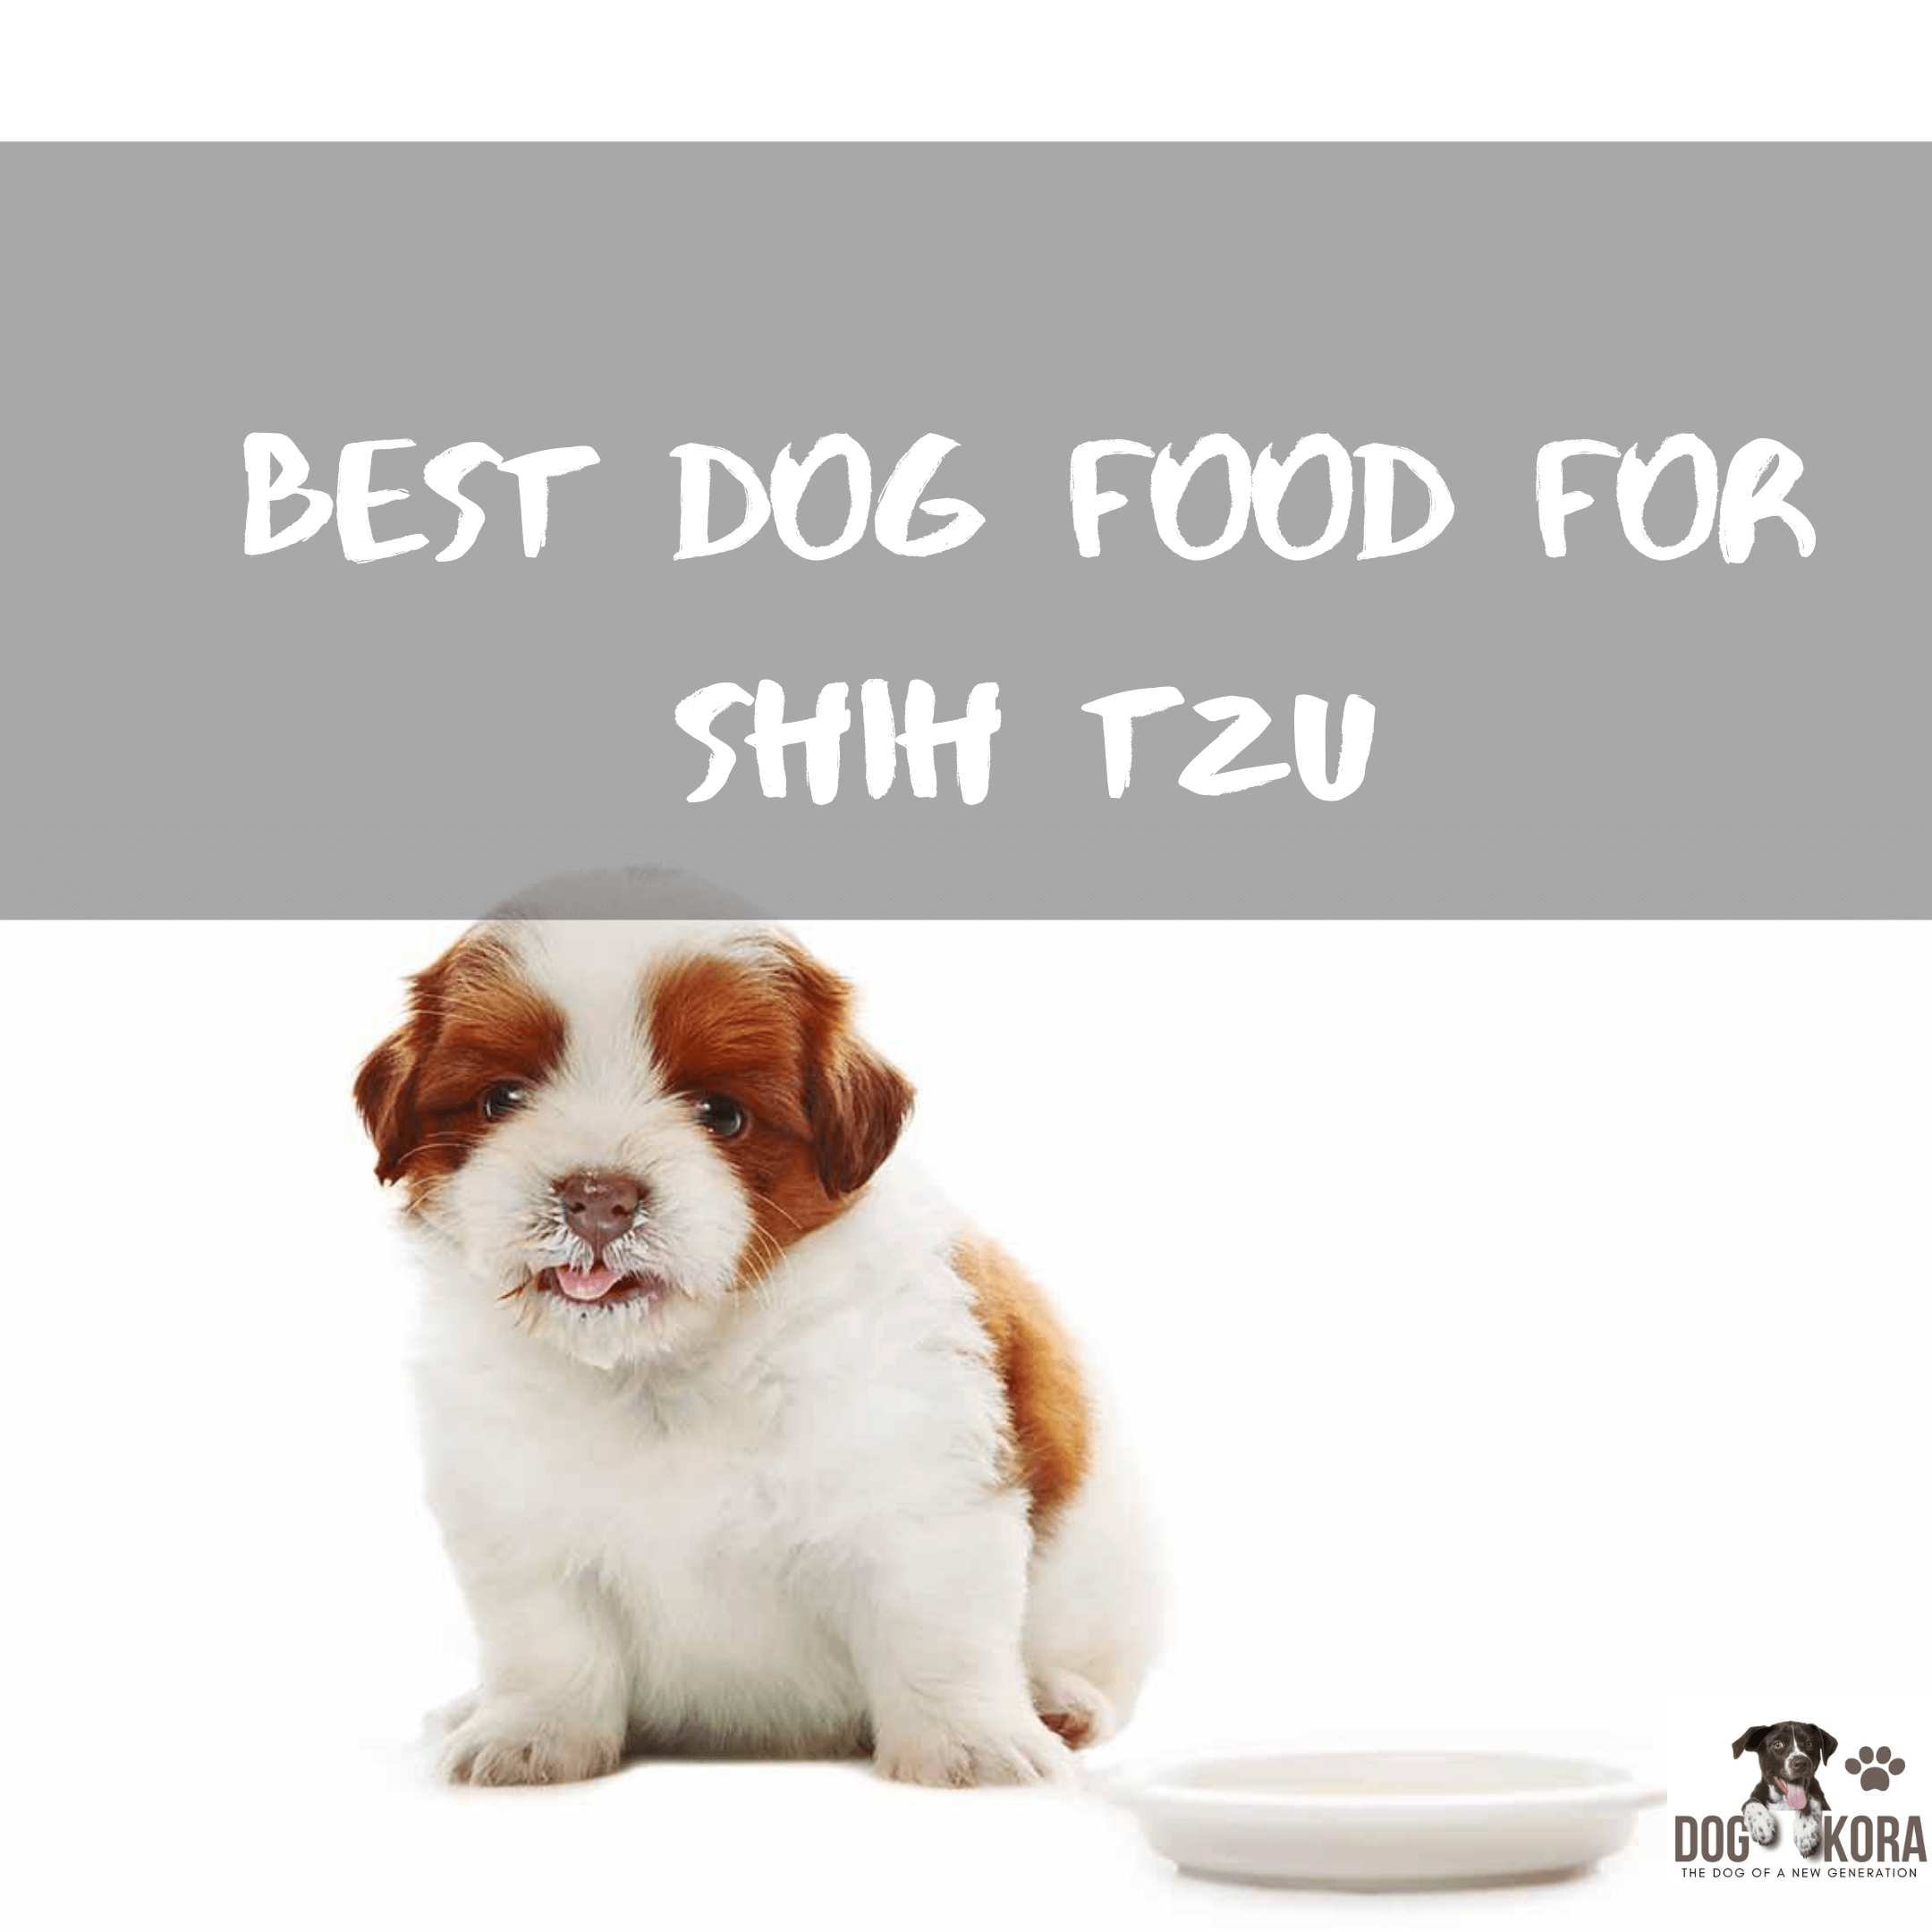 Best Dog Food For Shih tzu